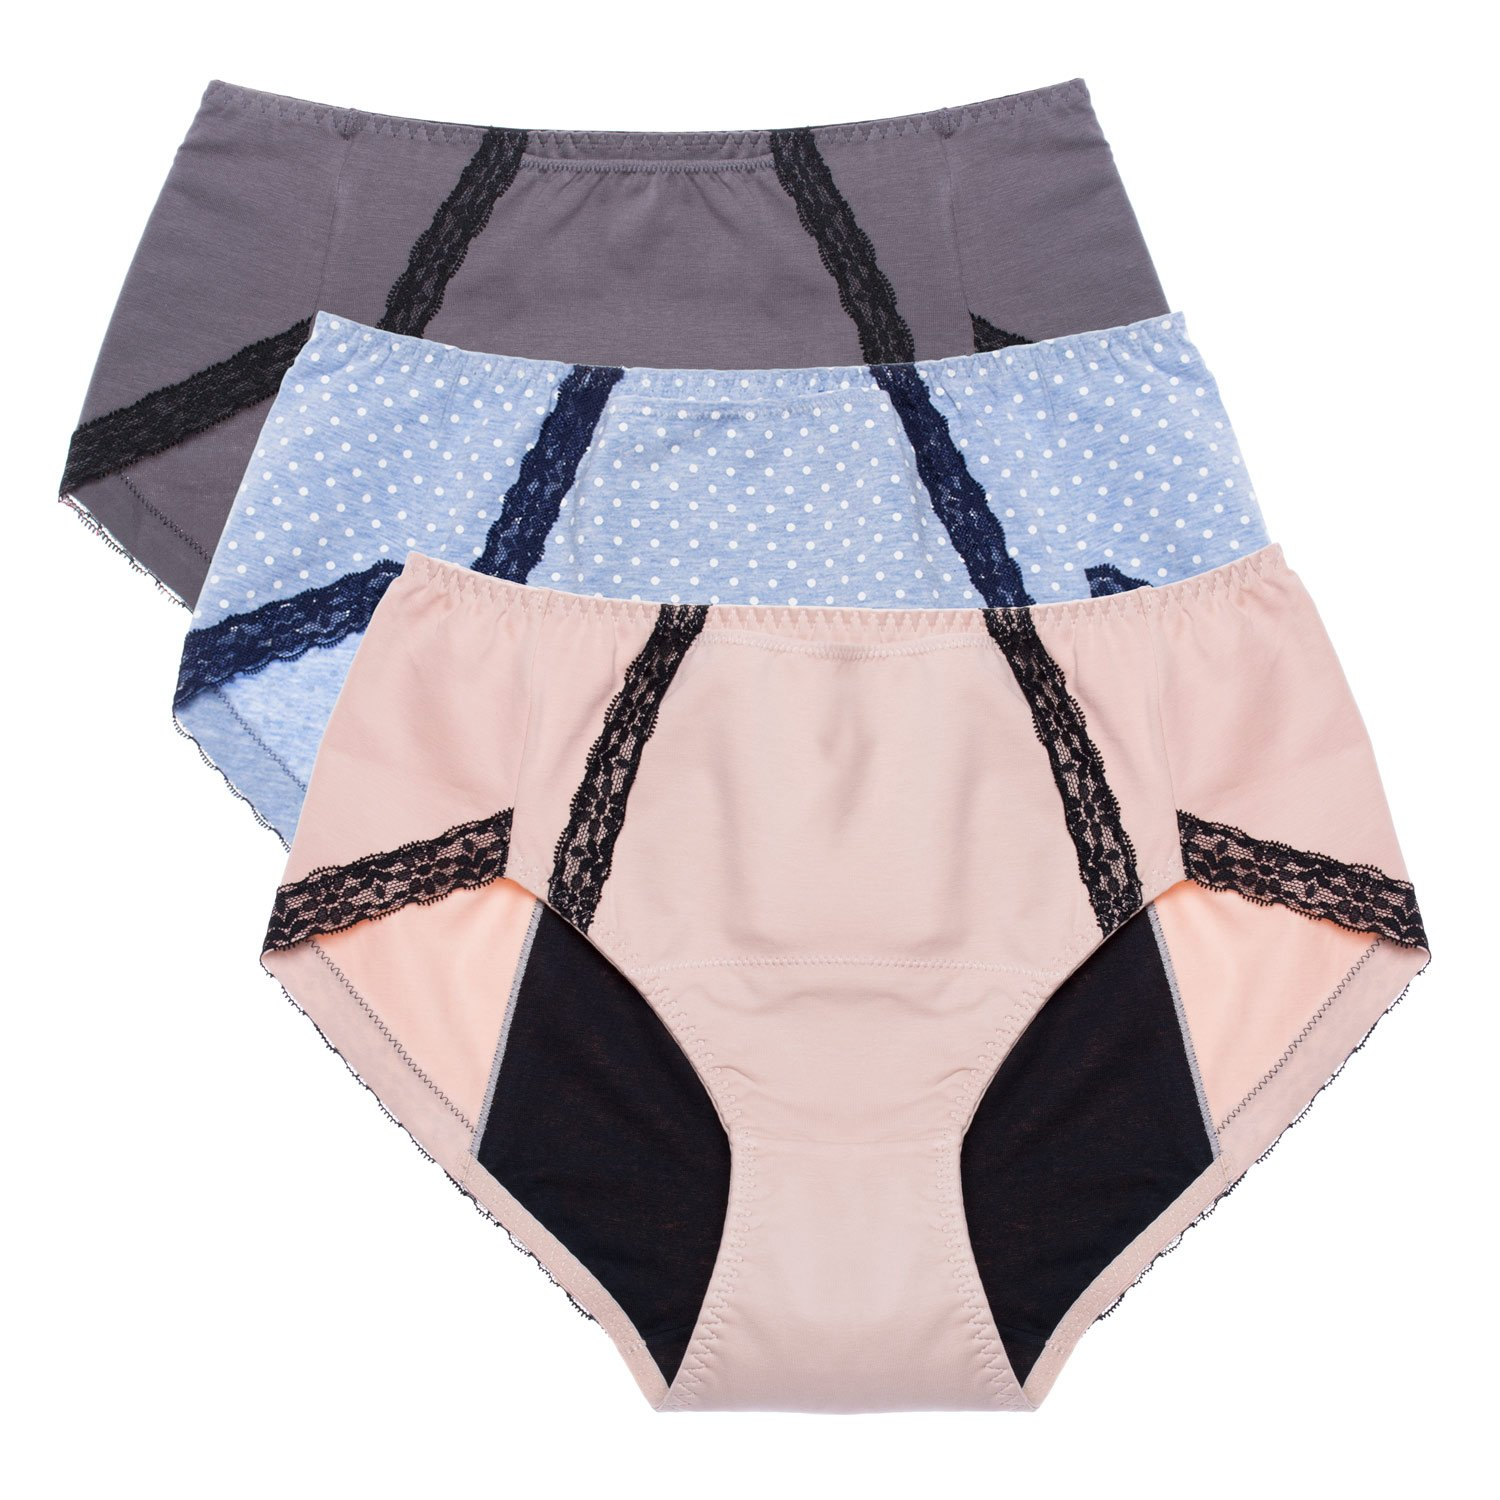 Intimate Portal Total Leak Proof Protective Briefs Incontinence Period Knickers